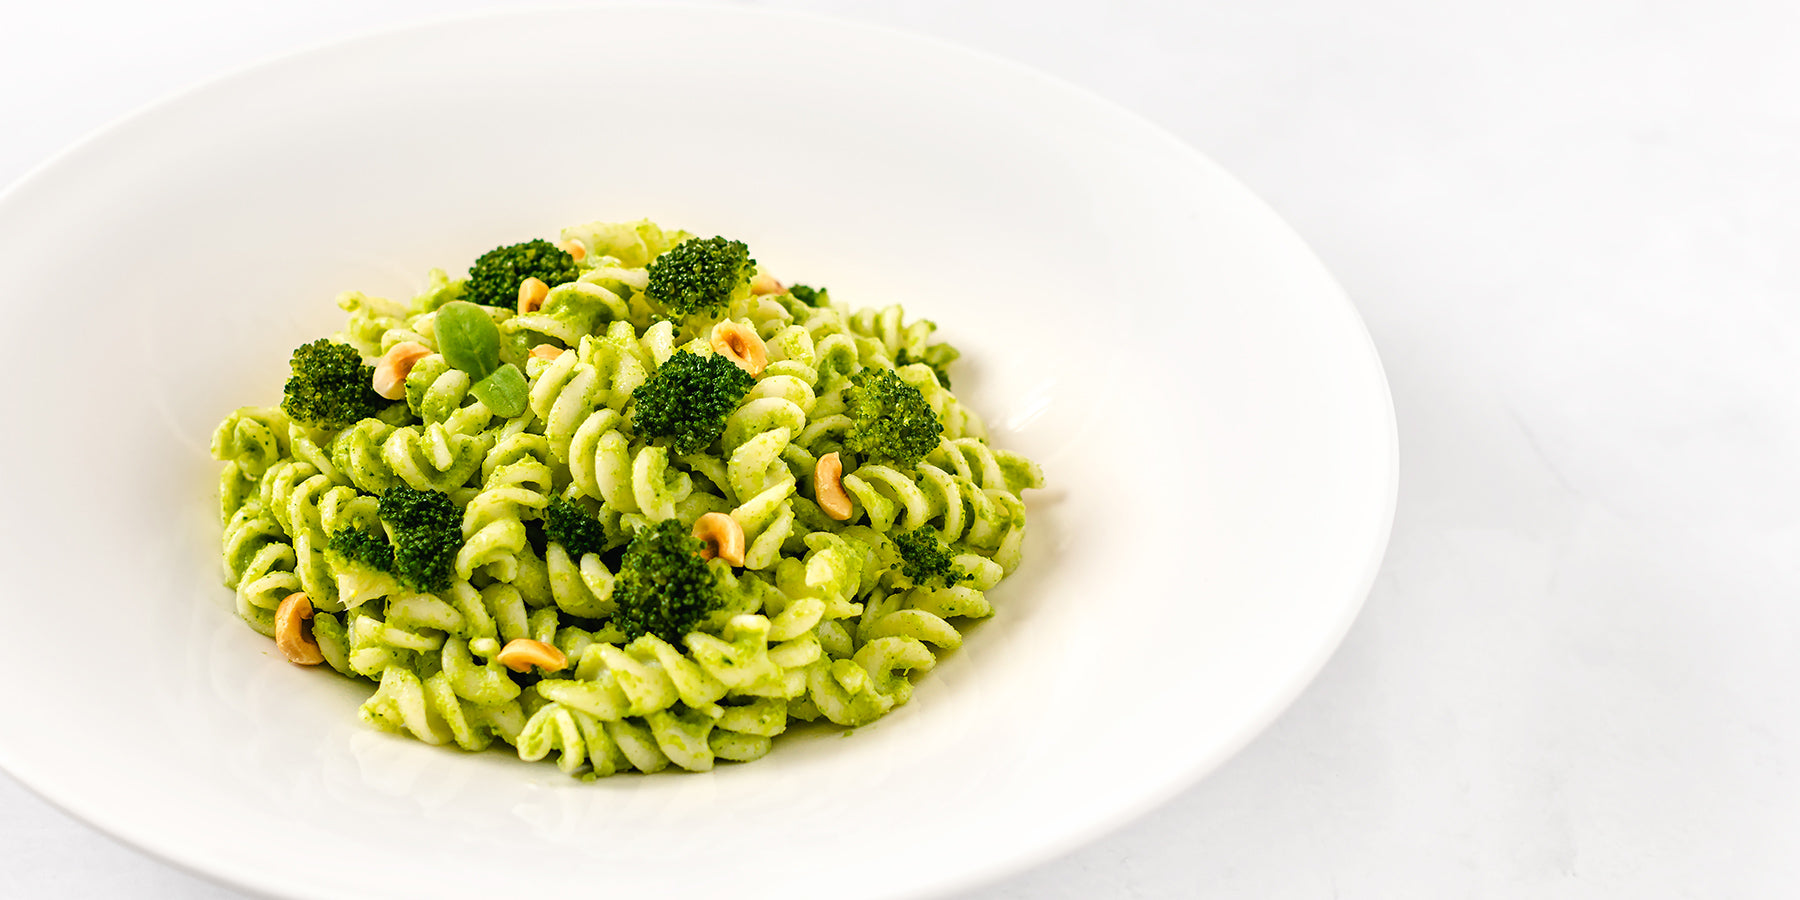 Plate of White Corn Fusilli with Broccoli Pesto and Hazelnuts